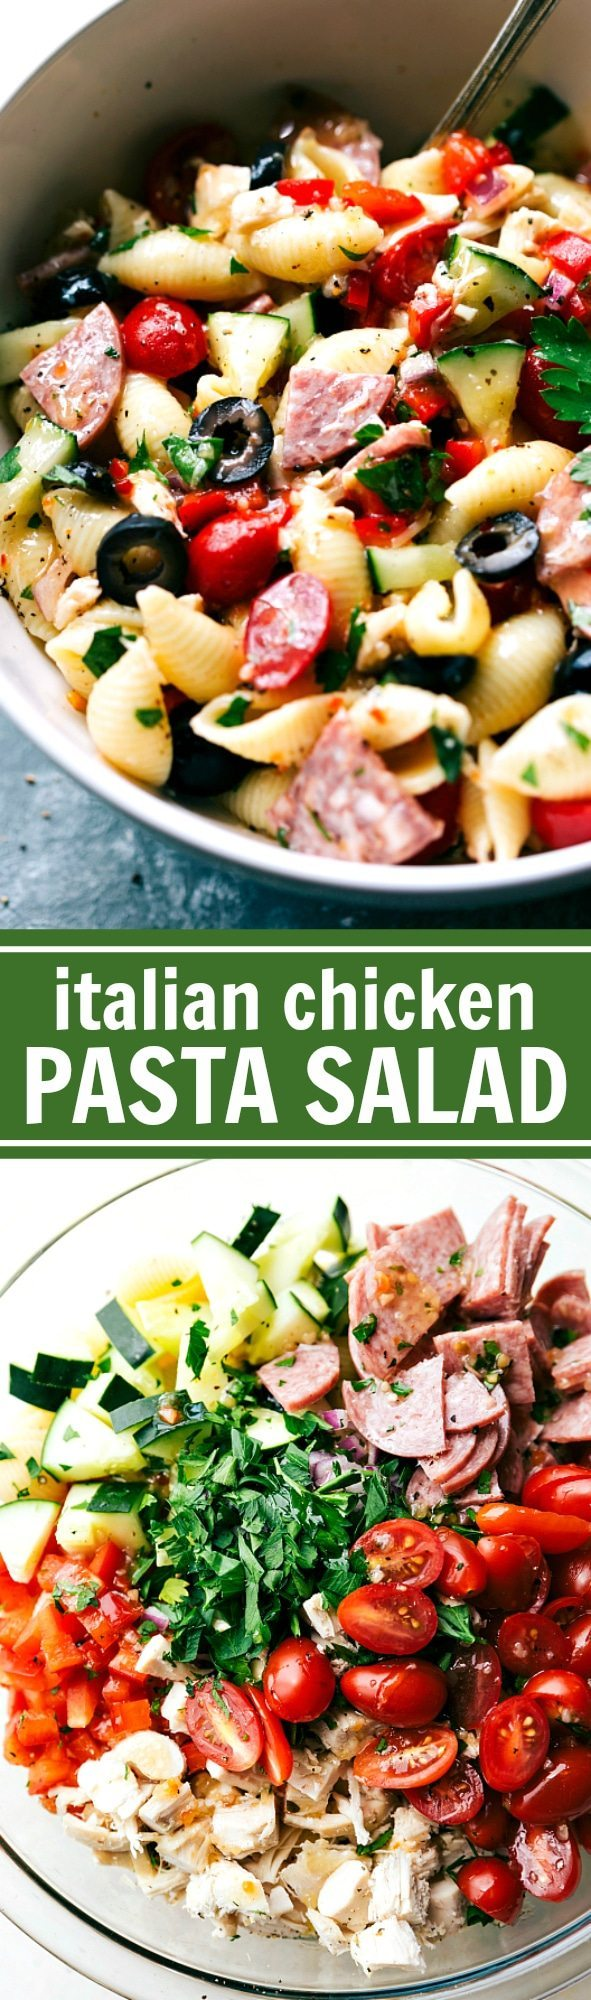 EASY Italian Chicken Pasta Salad with a super cool veggie cutting hack! Recipe via chelseasmessyapron.com